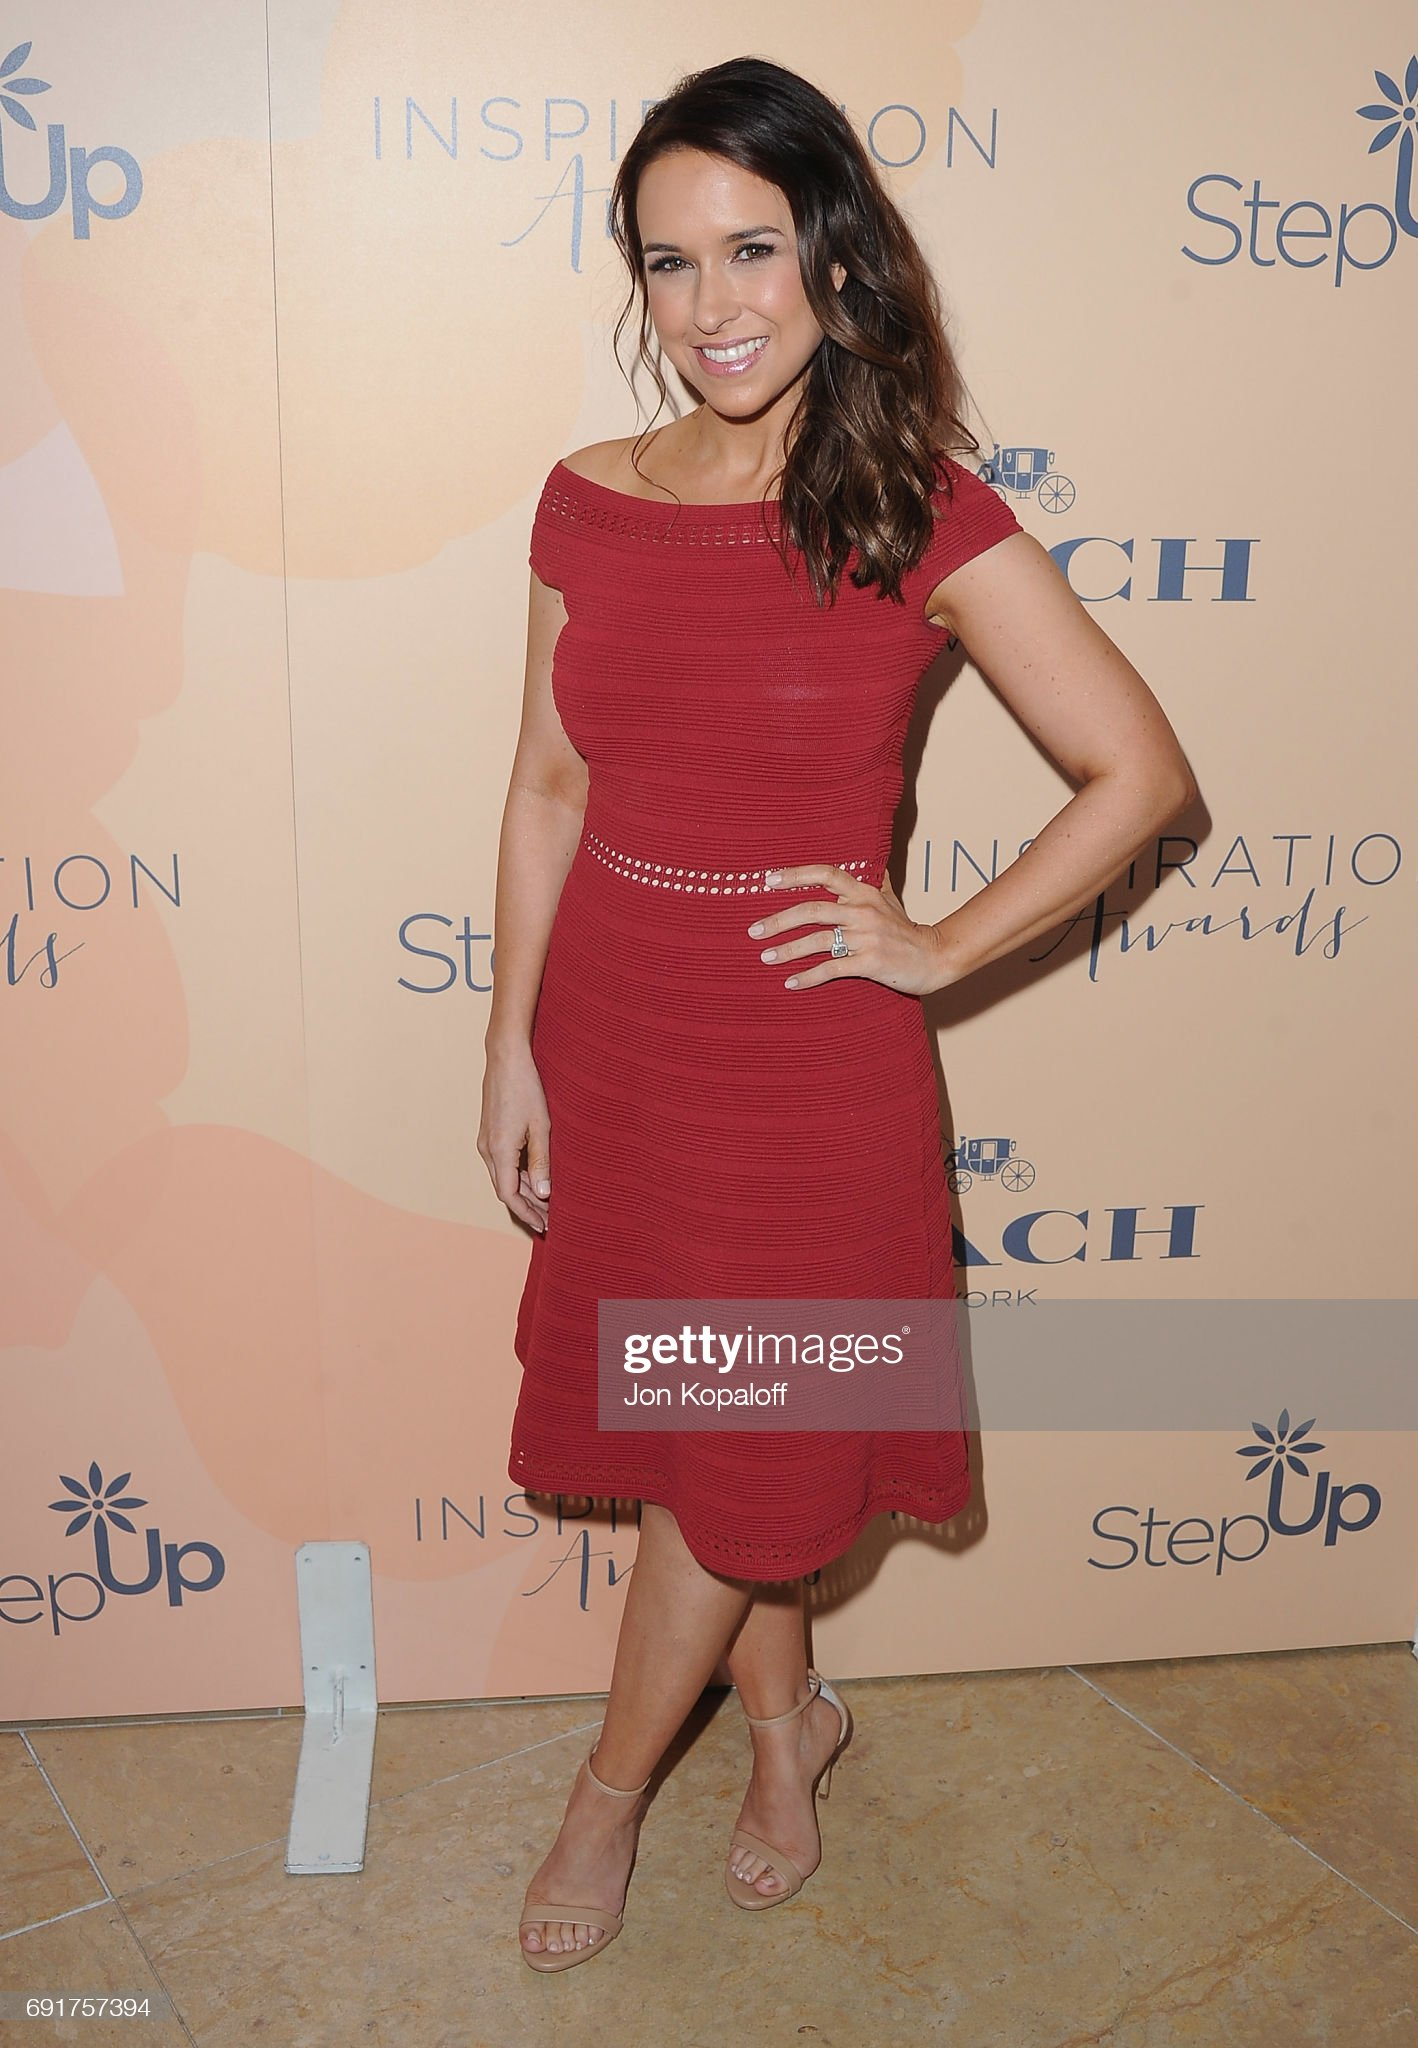 DEBATE sobre guapura de famosos y famosas - Página 3 Actress-lacey-chabert-arrives-at-the-14th-annual-inspiration-awards-picture-id691757394?s=2048x2048